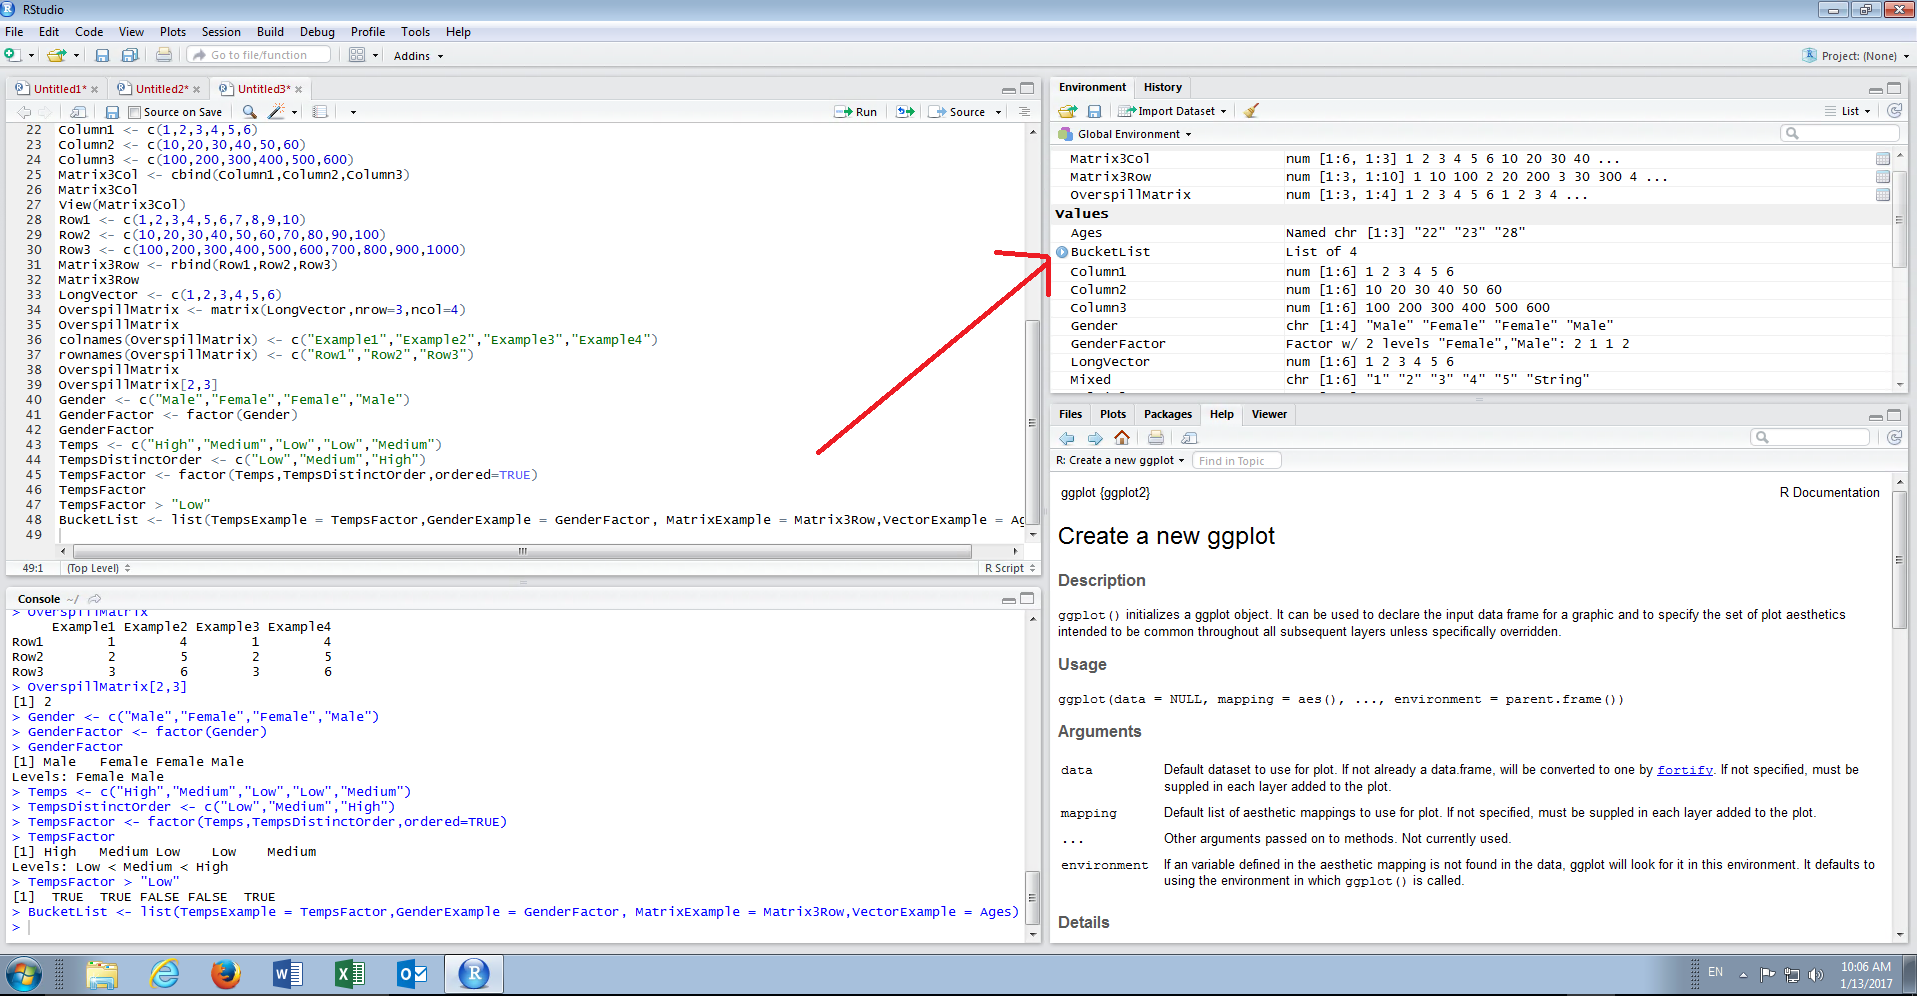 a-list-presented-in-the-environment-variables-of-rstudio.png